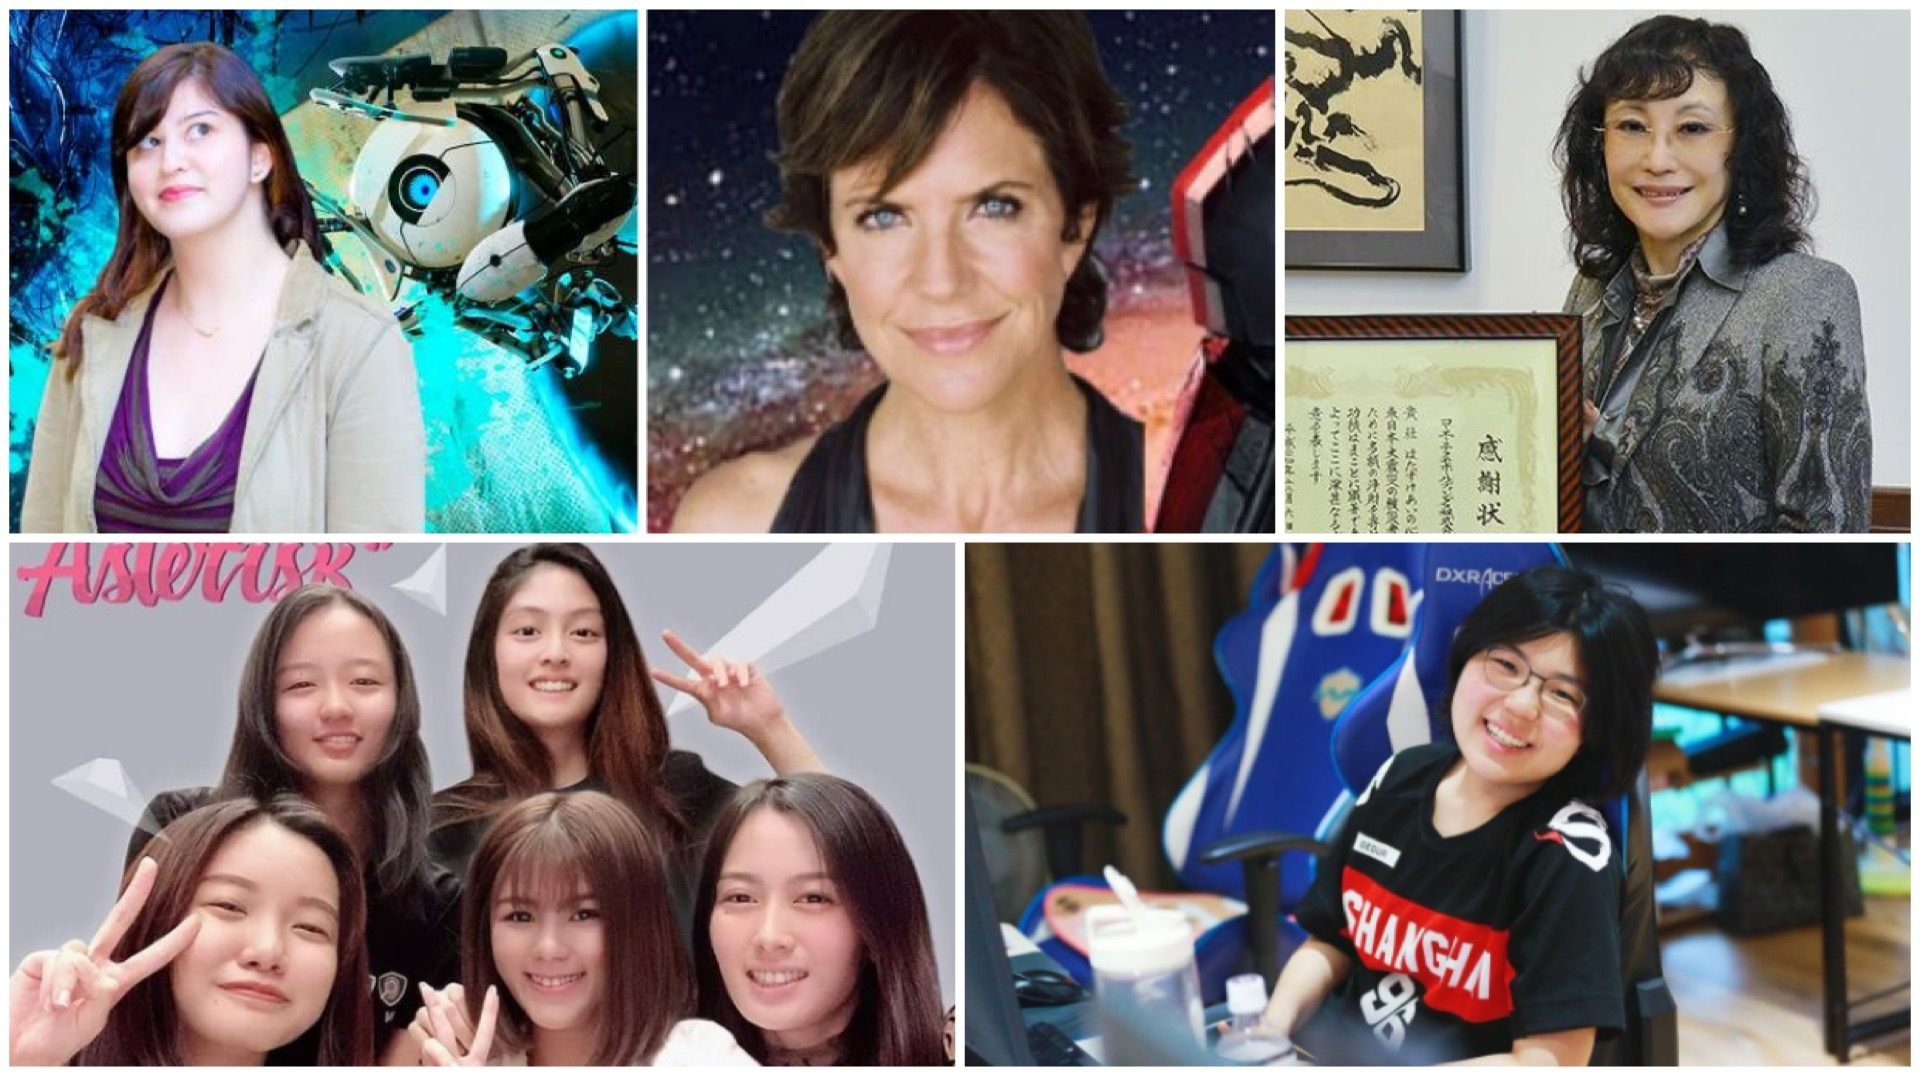 "(Clockwise from top left): American video game designer Kim Swift; voice actor Jennifer Hale; Koei co-founder Keiko Erikawa; first female esports player signed to the Overwatch League Kim ""Geguri"" Se-yeon; and first Singapore all-female e-sports team Asterisk."